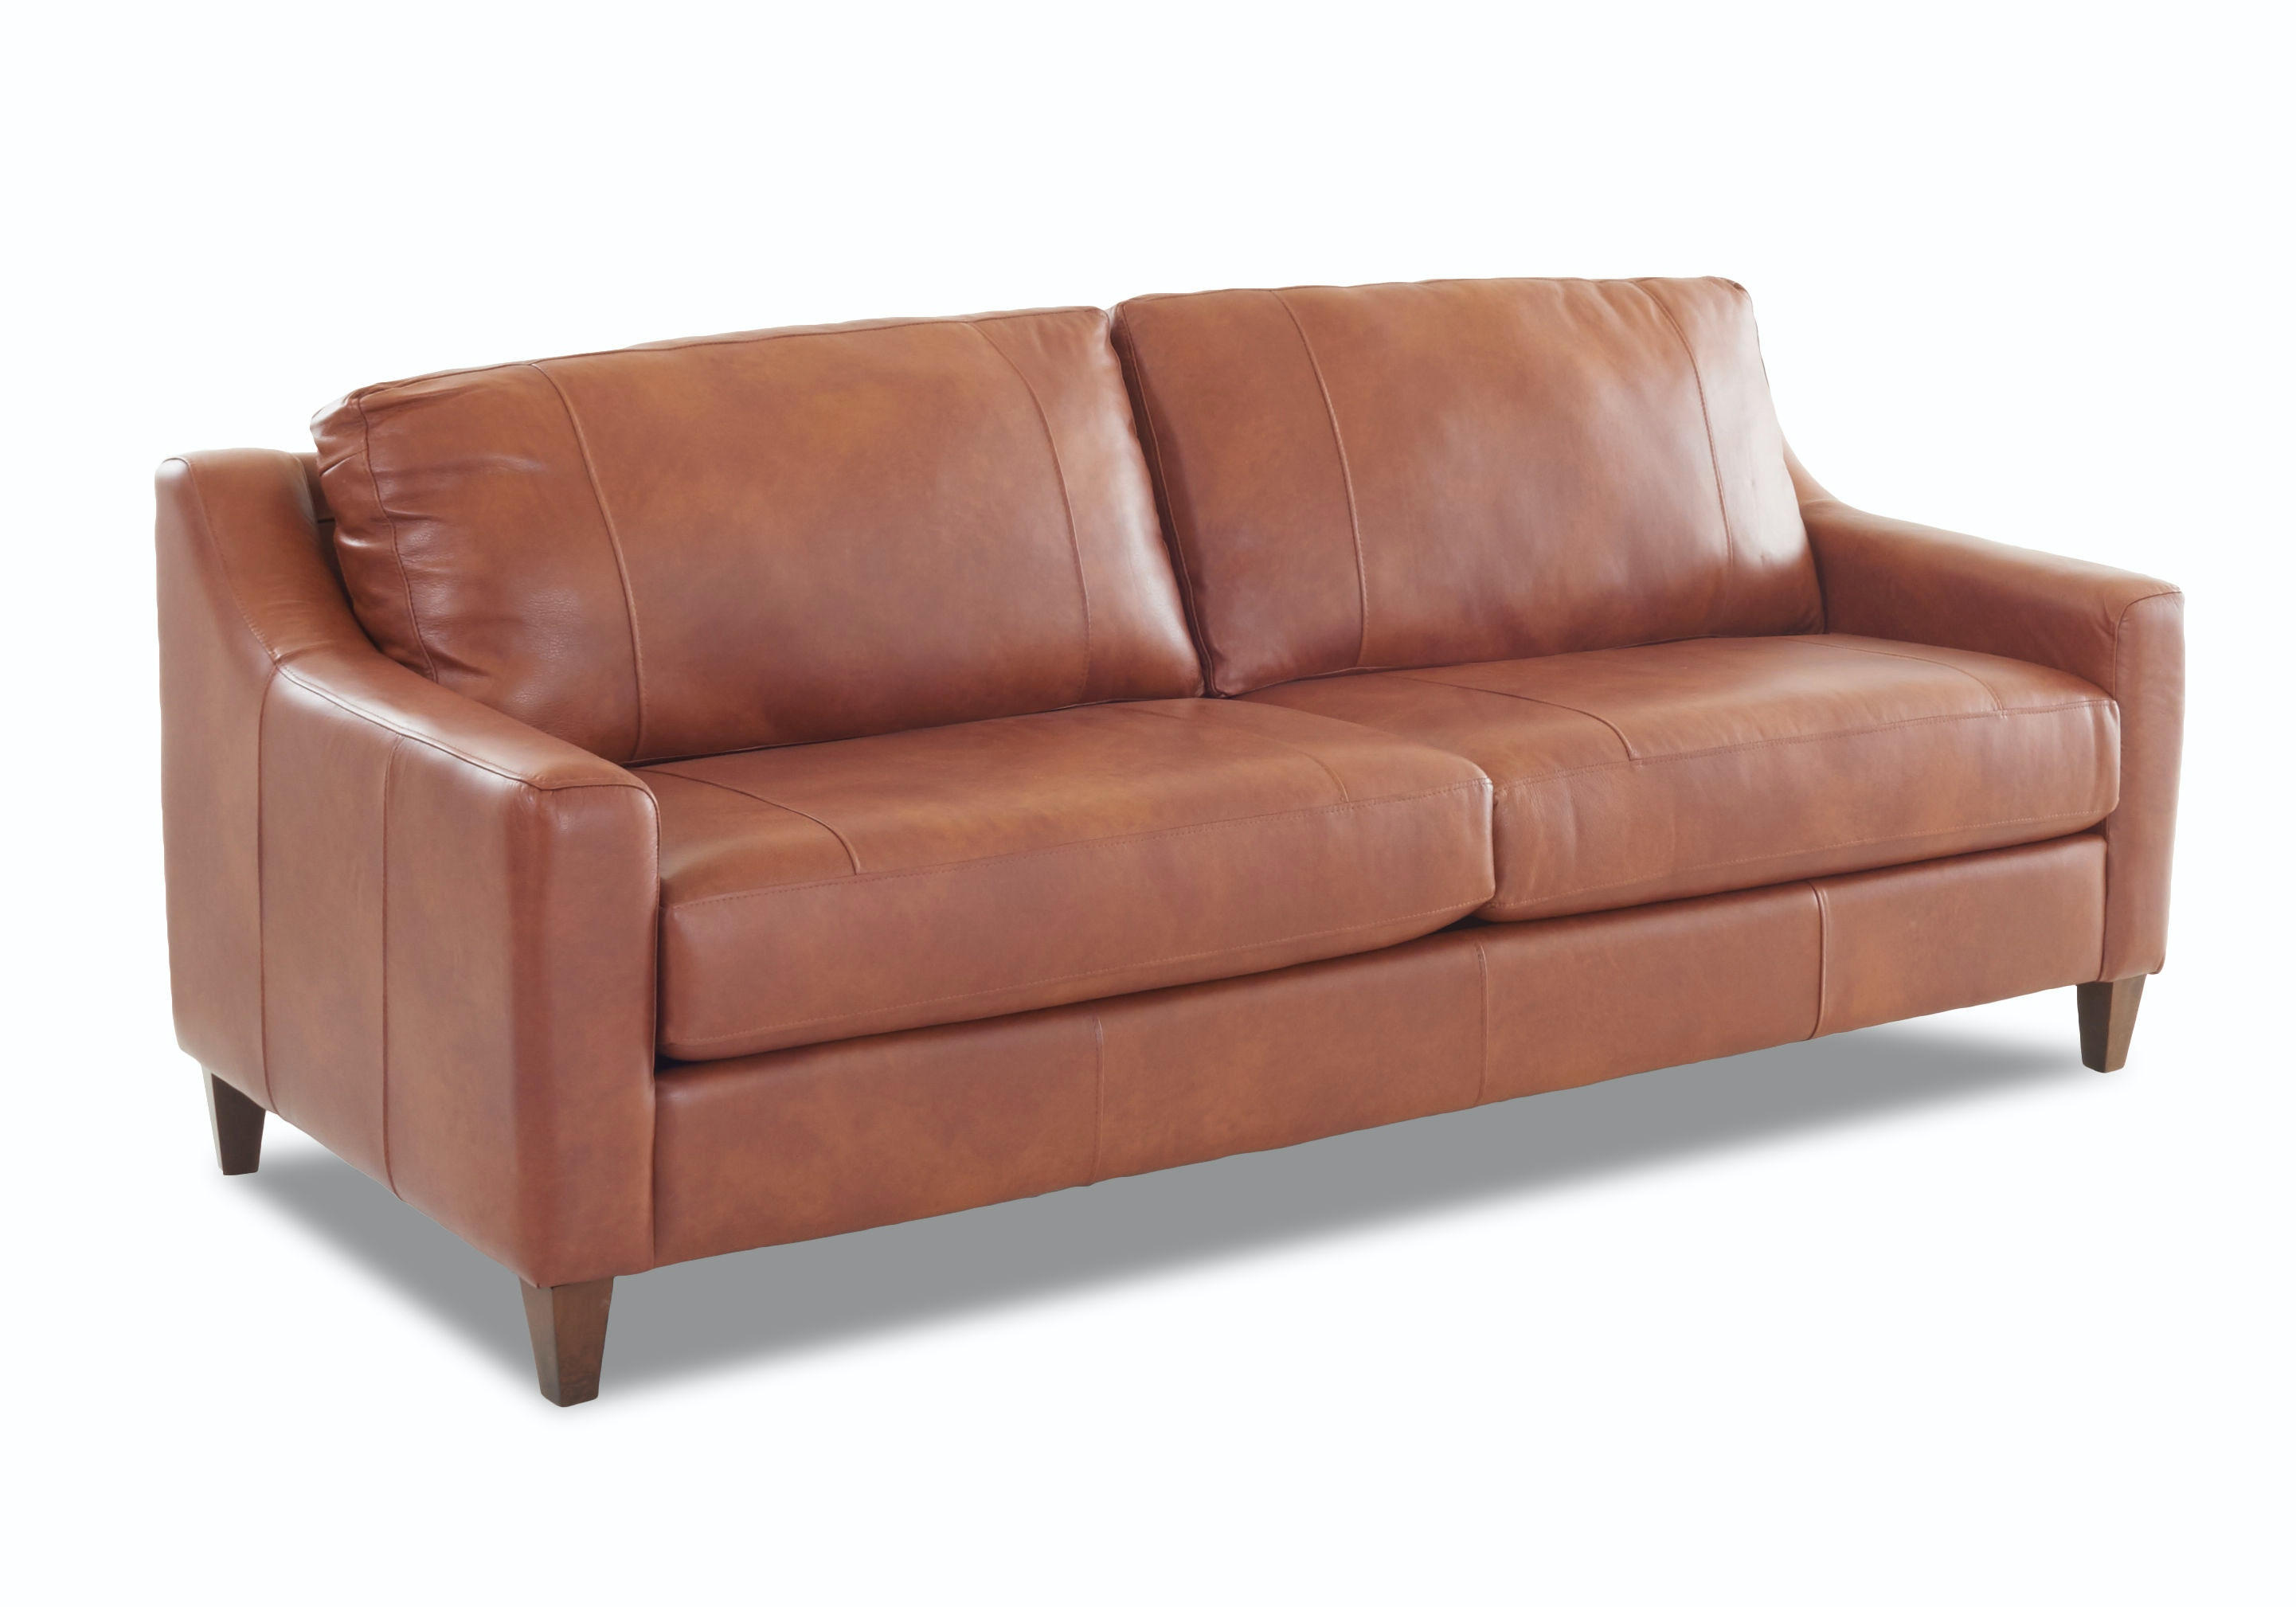 Comfort Design Living Room Jesper Sofa CL2400 S At Furniture Forever